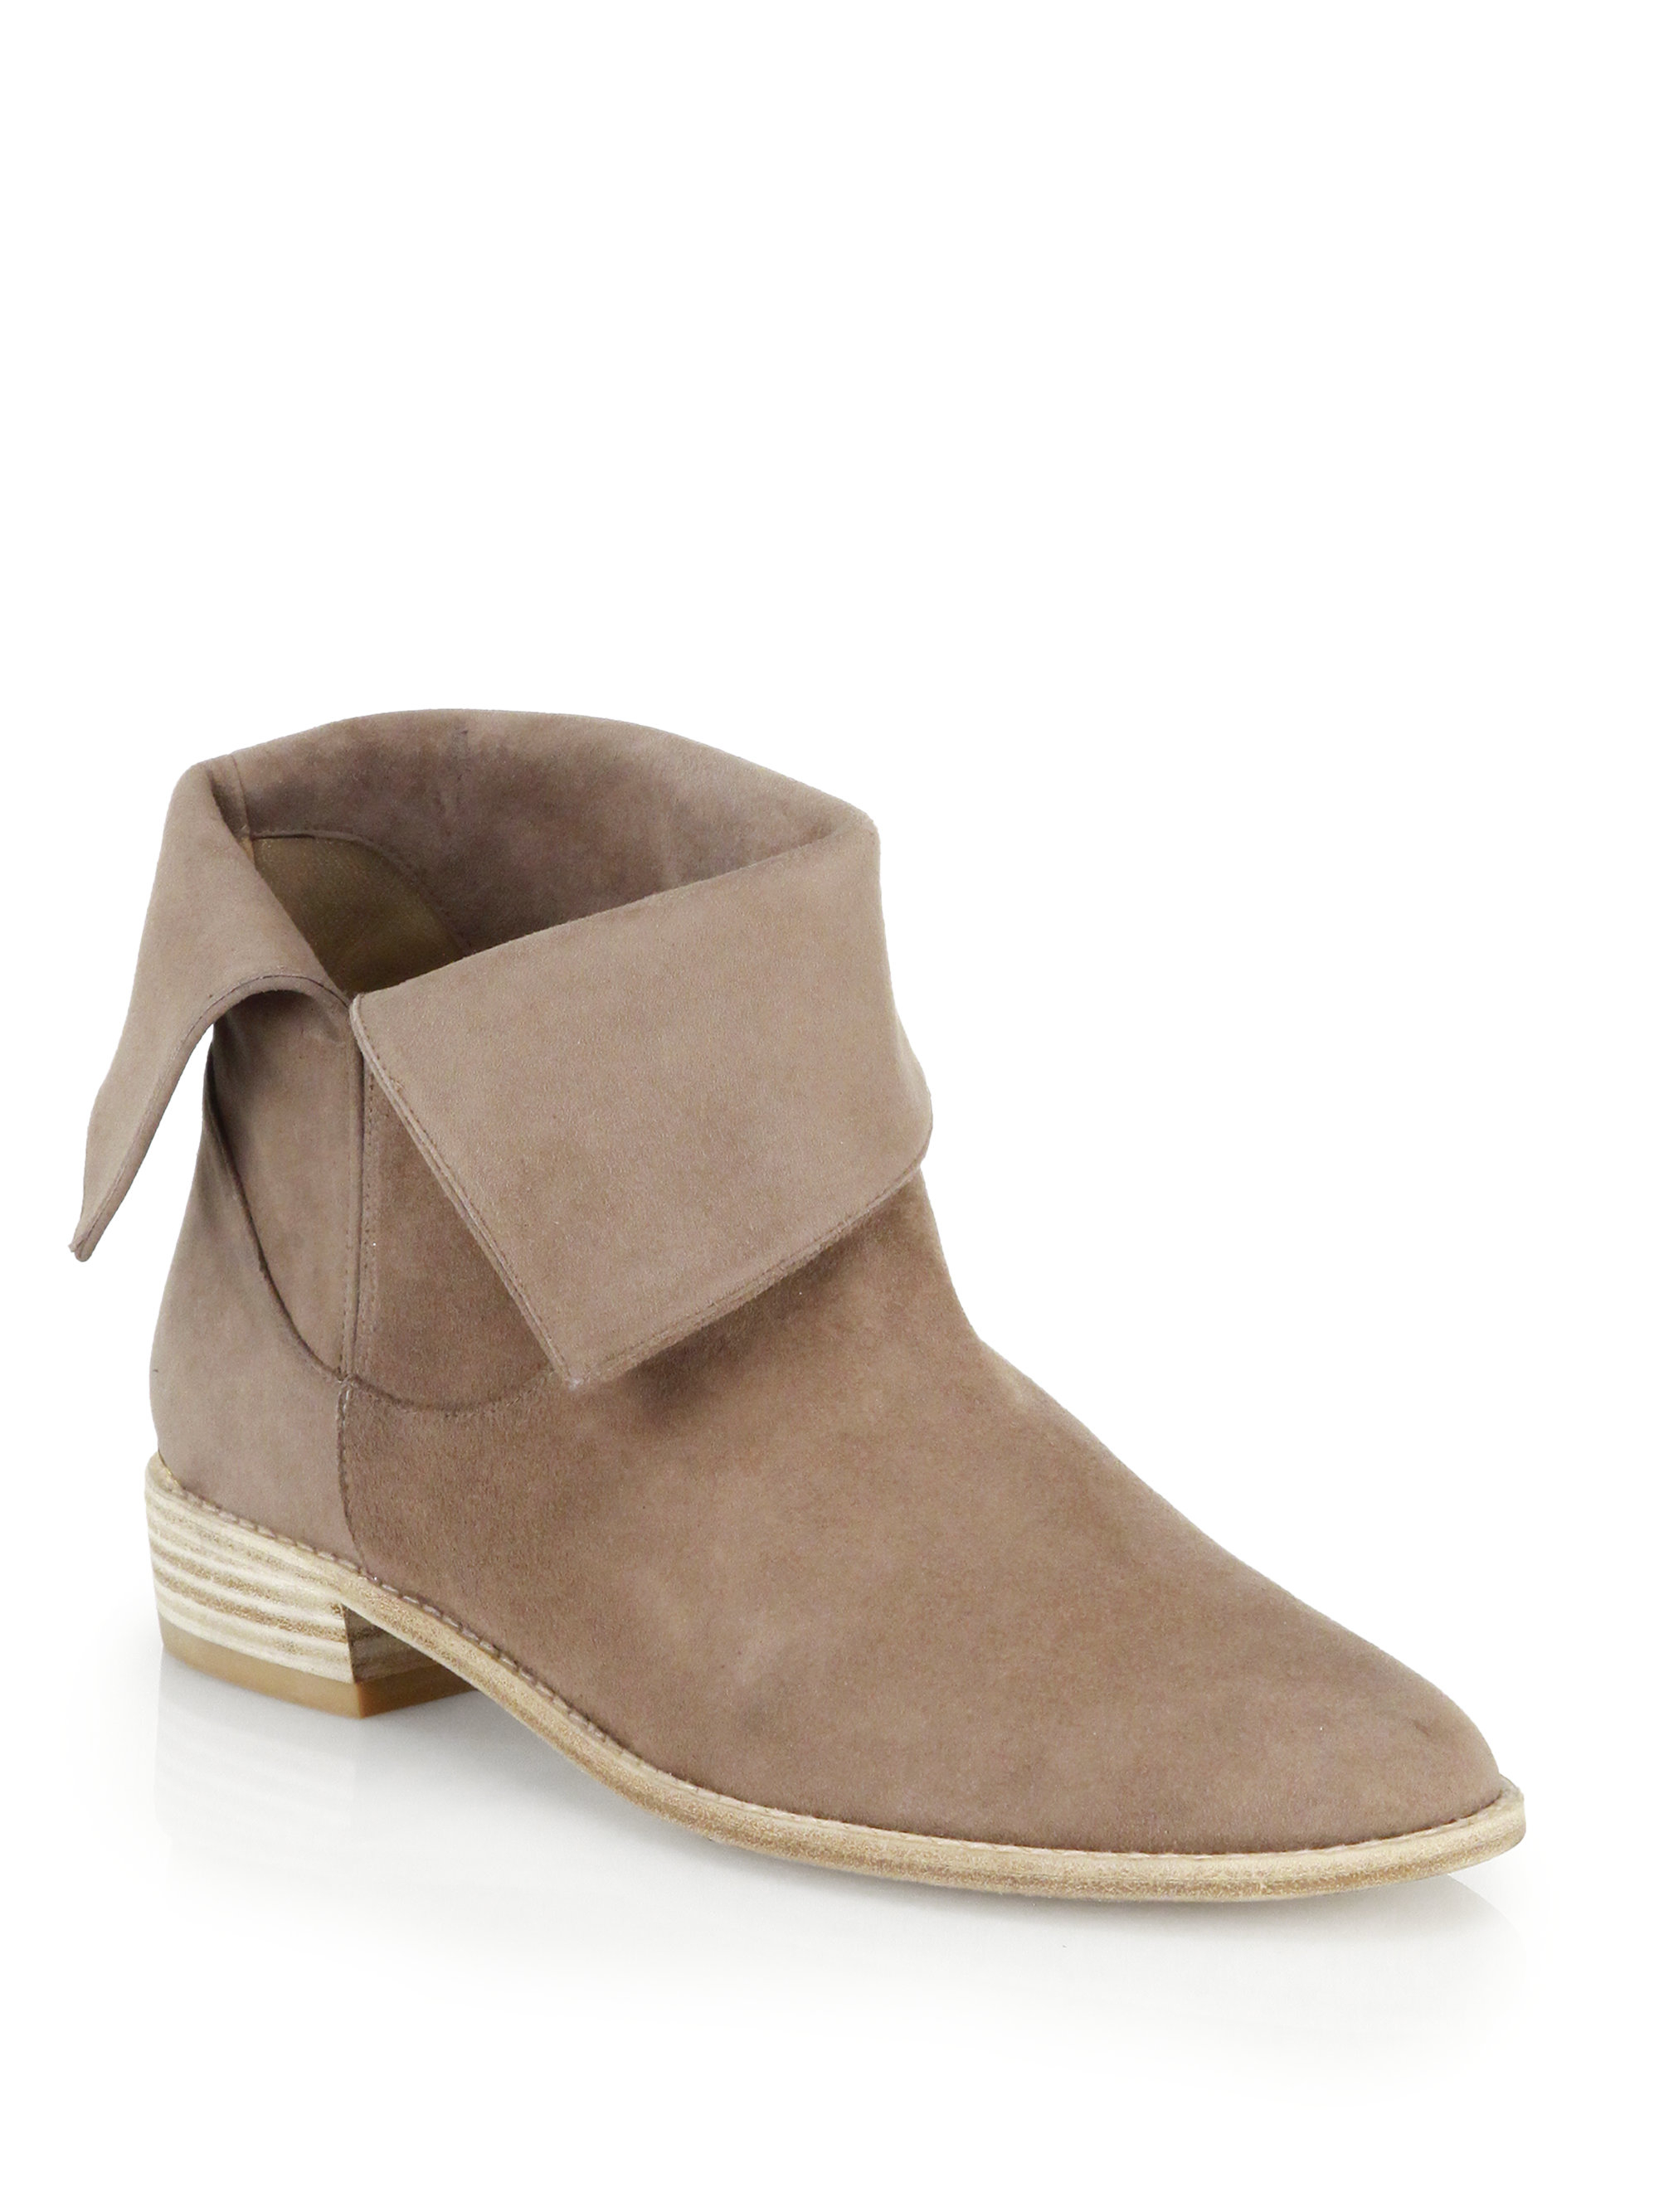 Stuart weitzman Suede Foldover Ankle Boots in Natural | Lyst